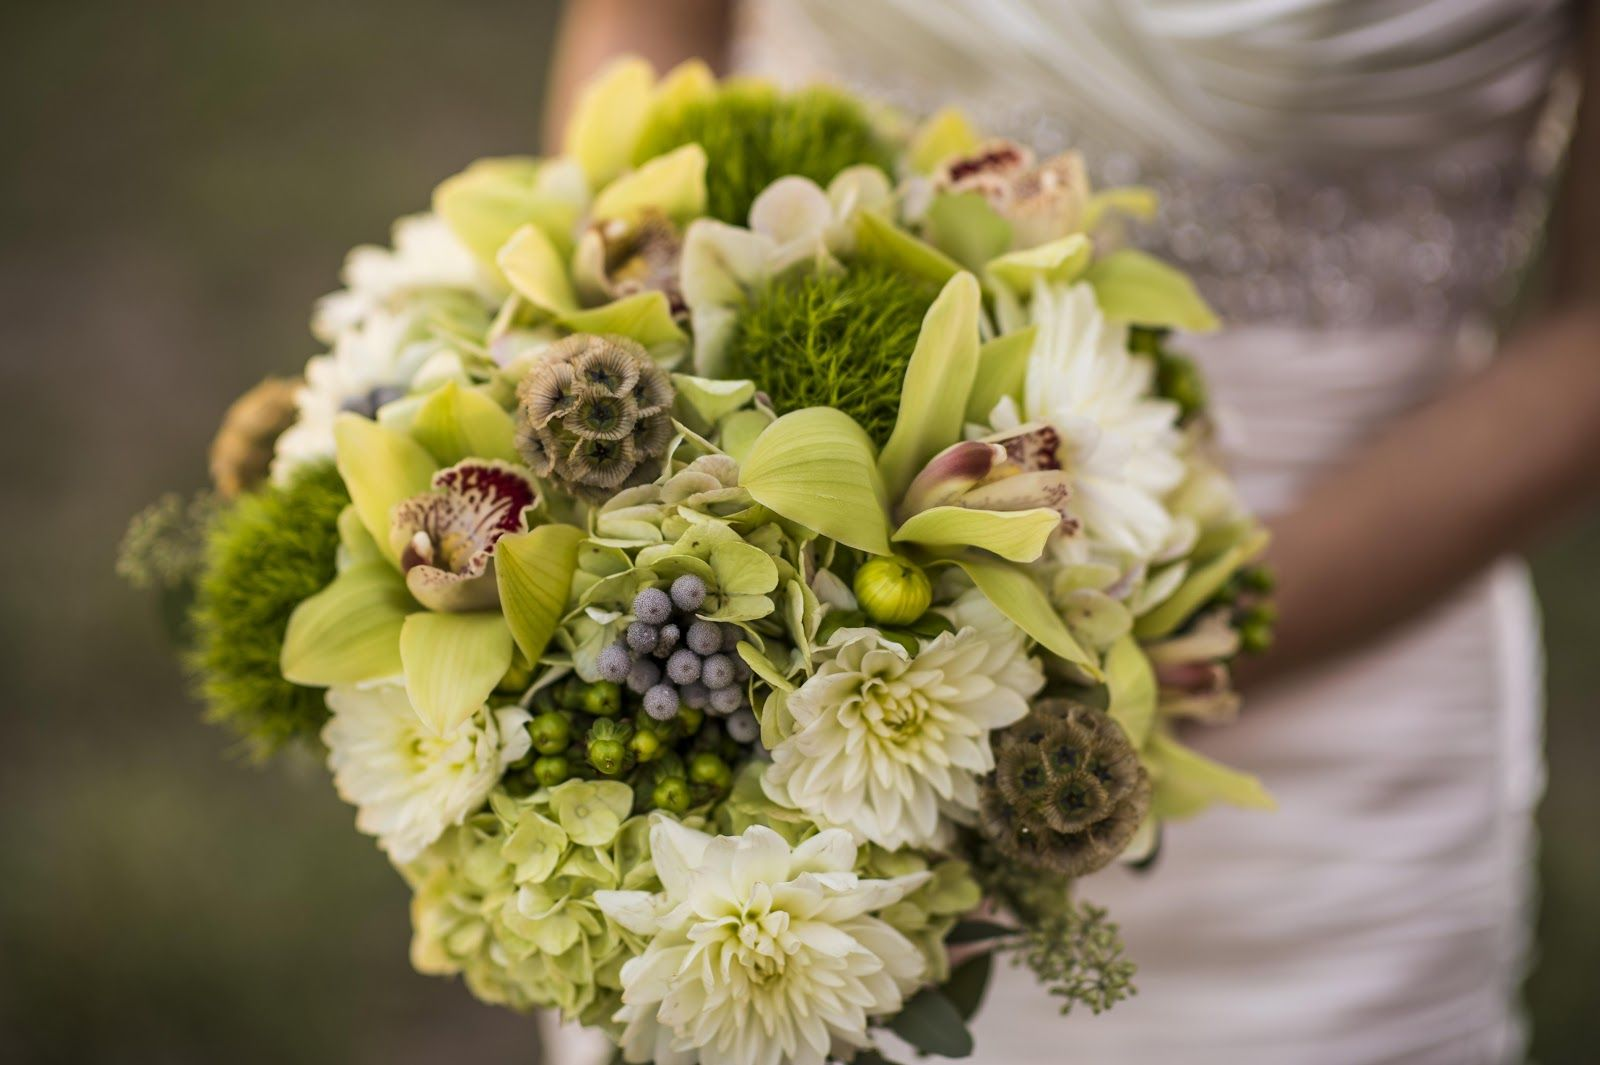 cymbidium orchids, dahlias, hydrangea, silver brunia berries, hypericum berries, scabiosa pods, green trick, and more